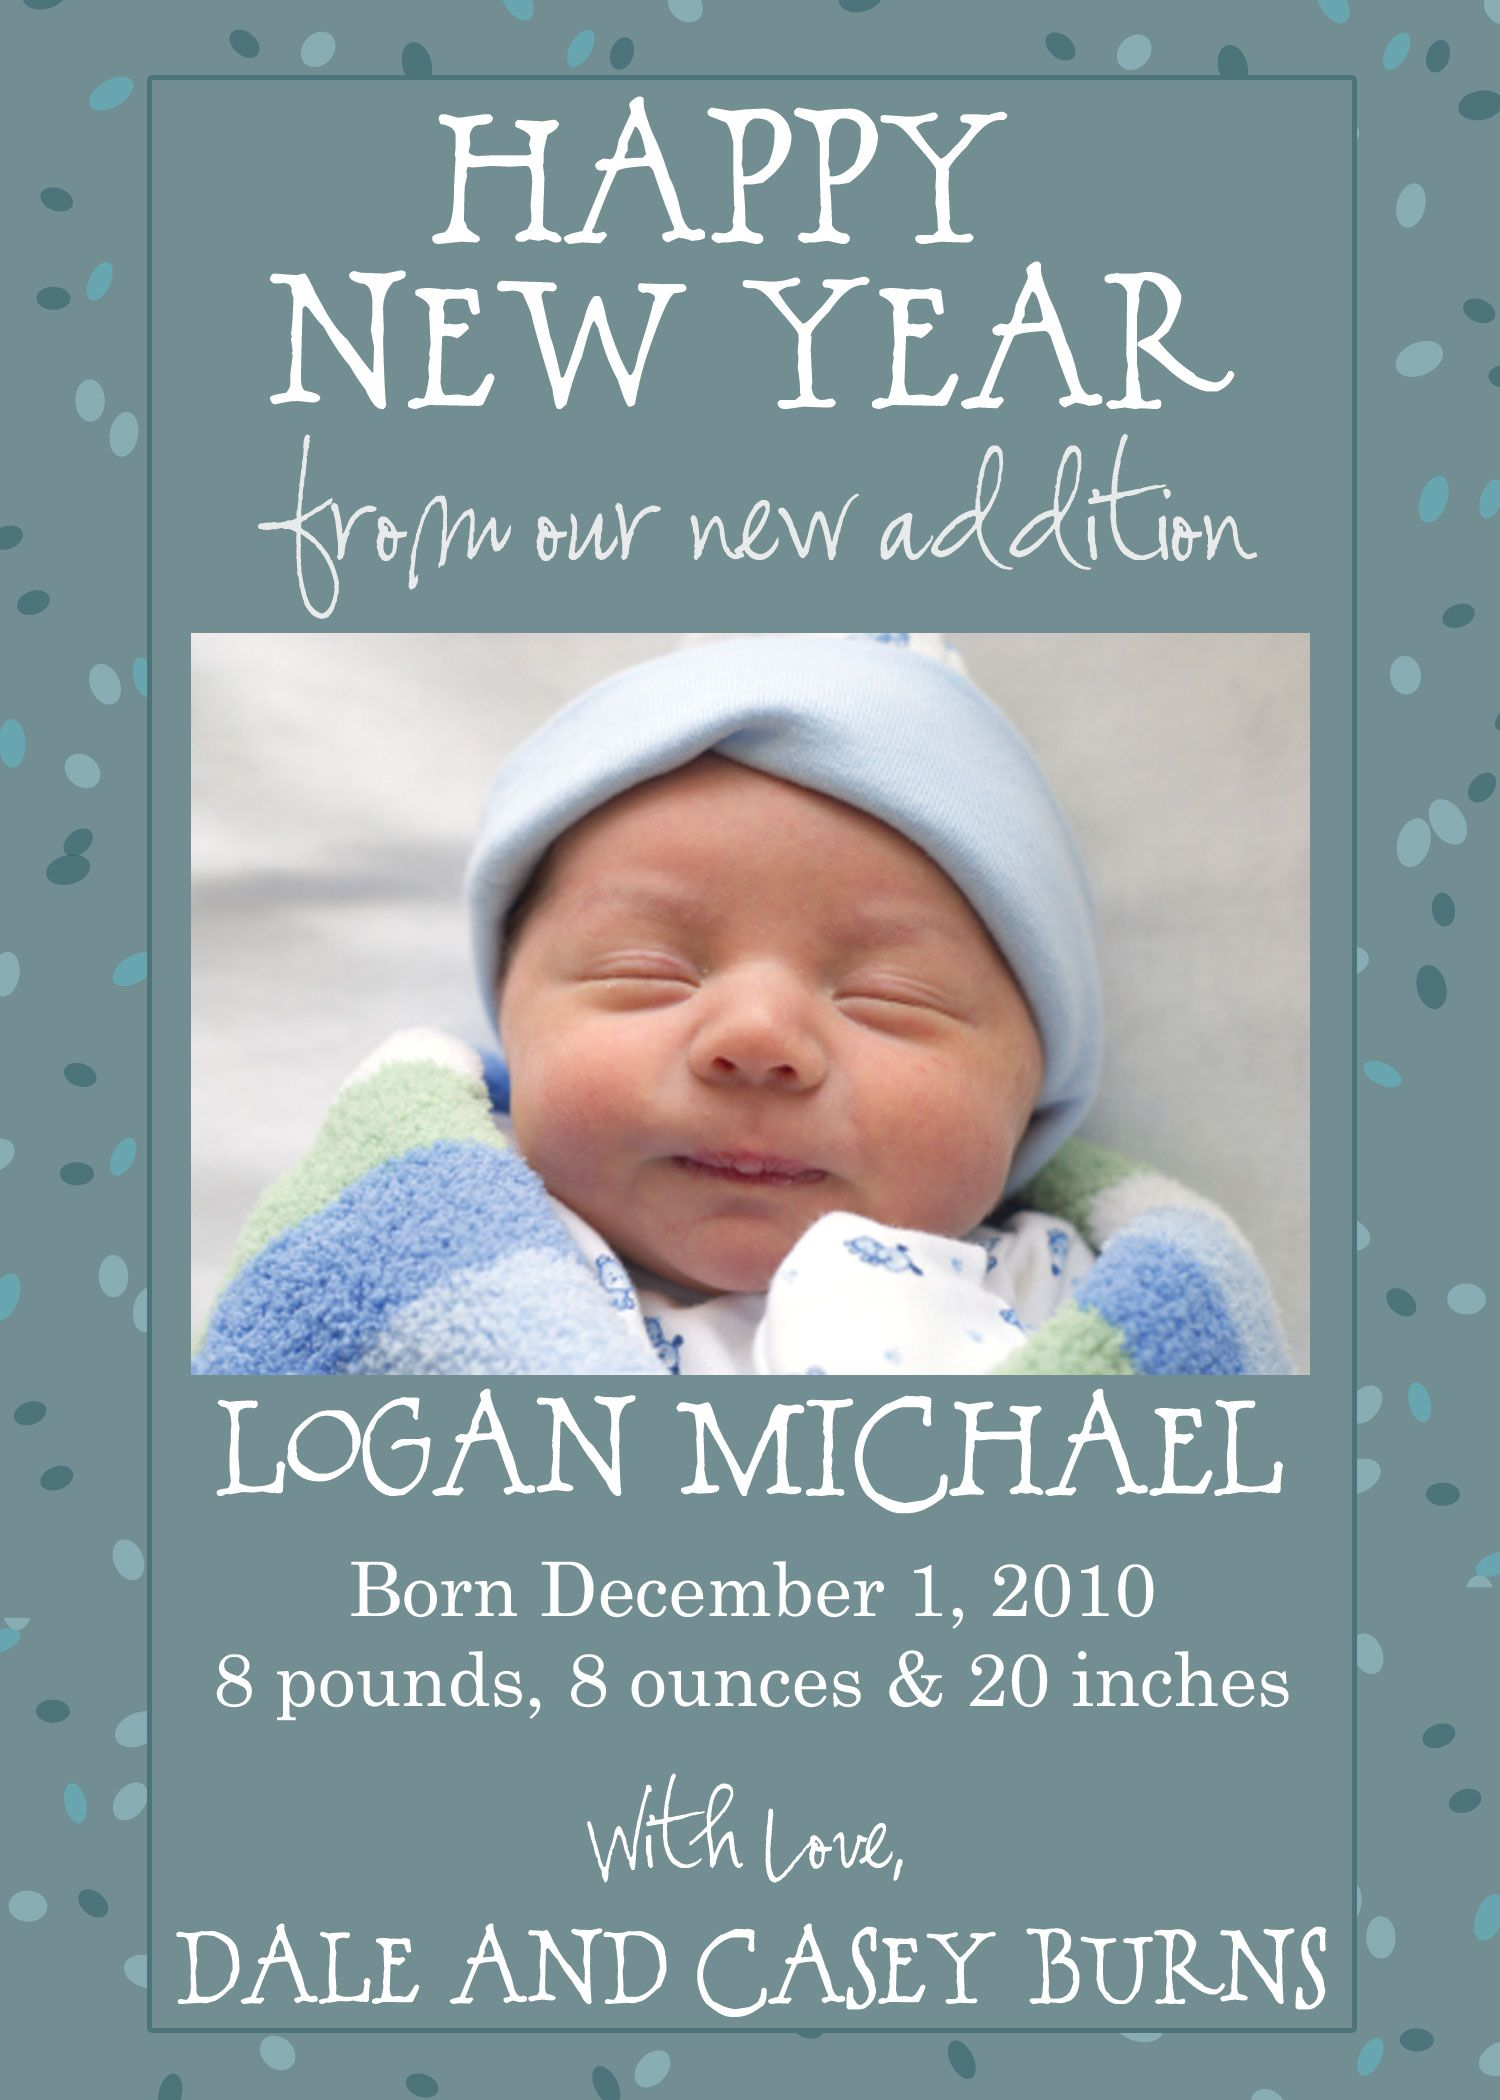 1000 images about Baby Announcements – New Years Birth Announcements